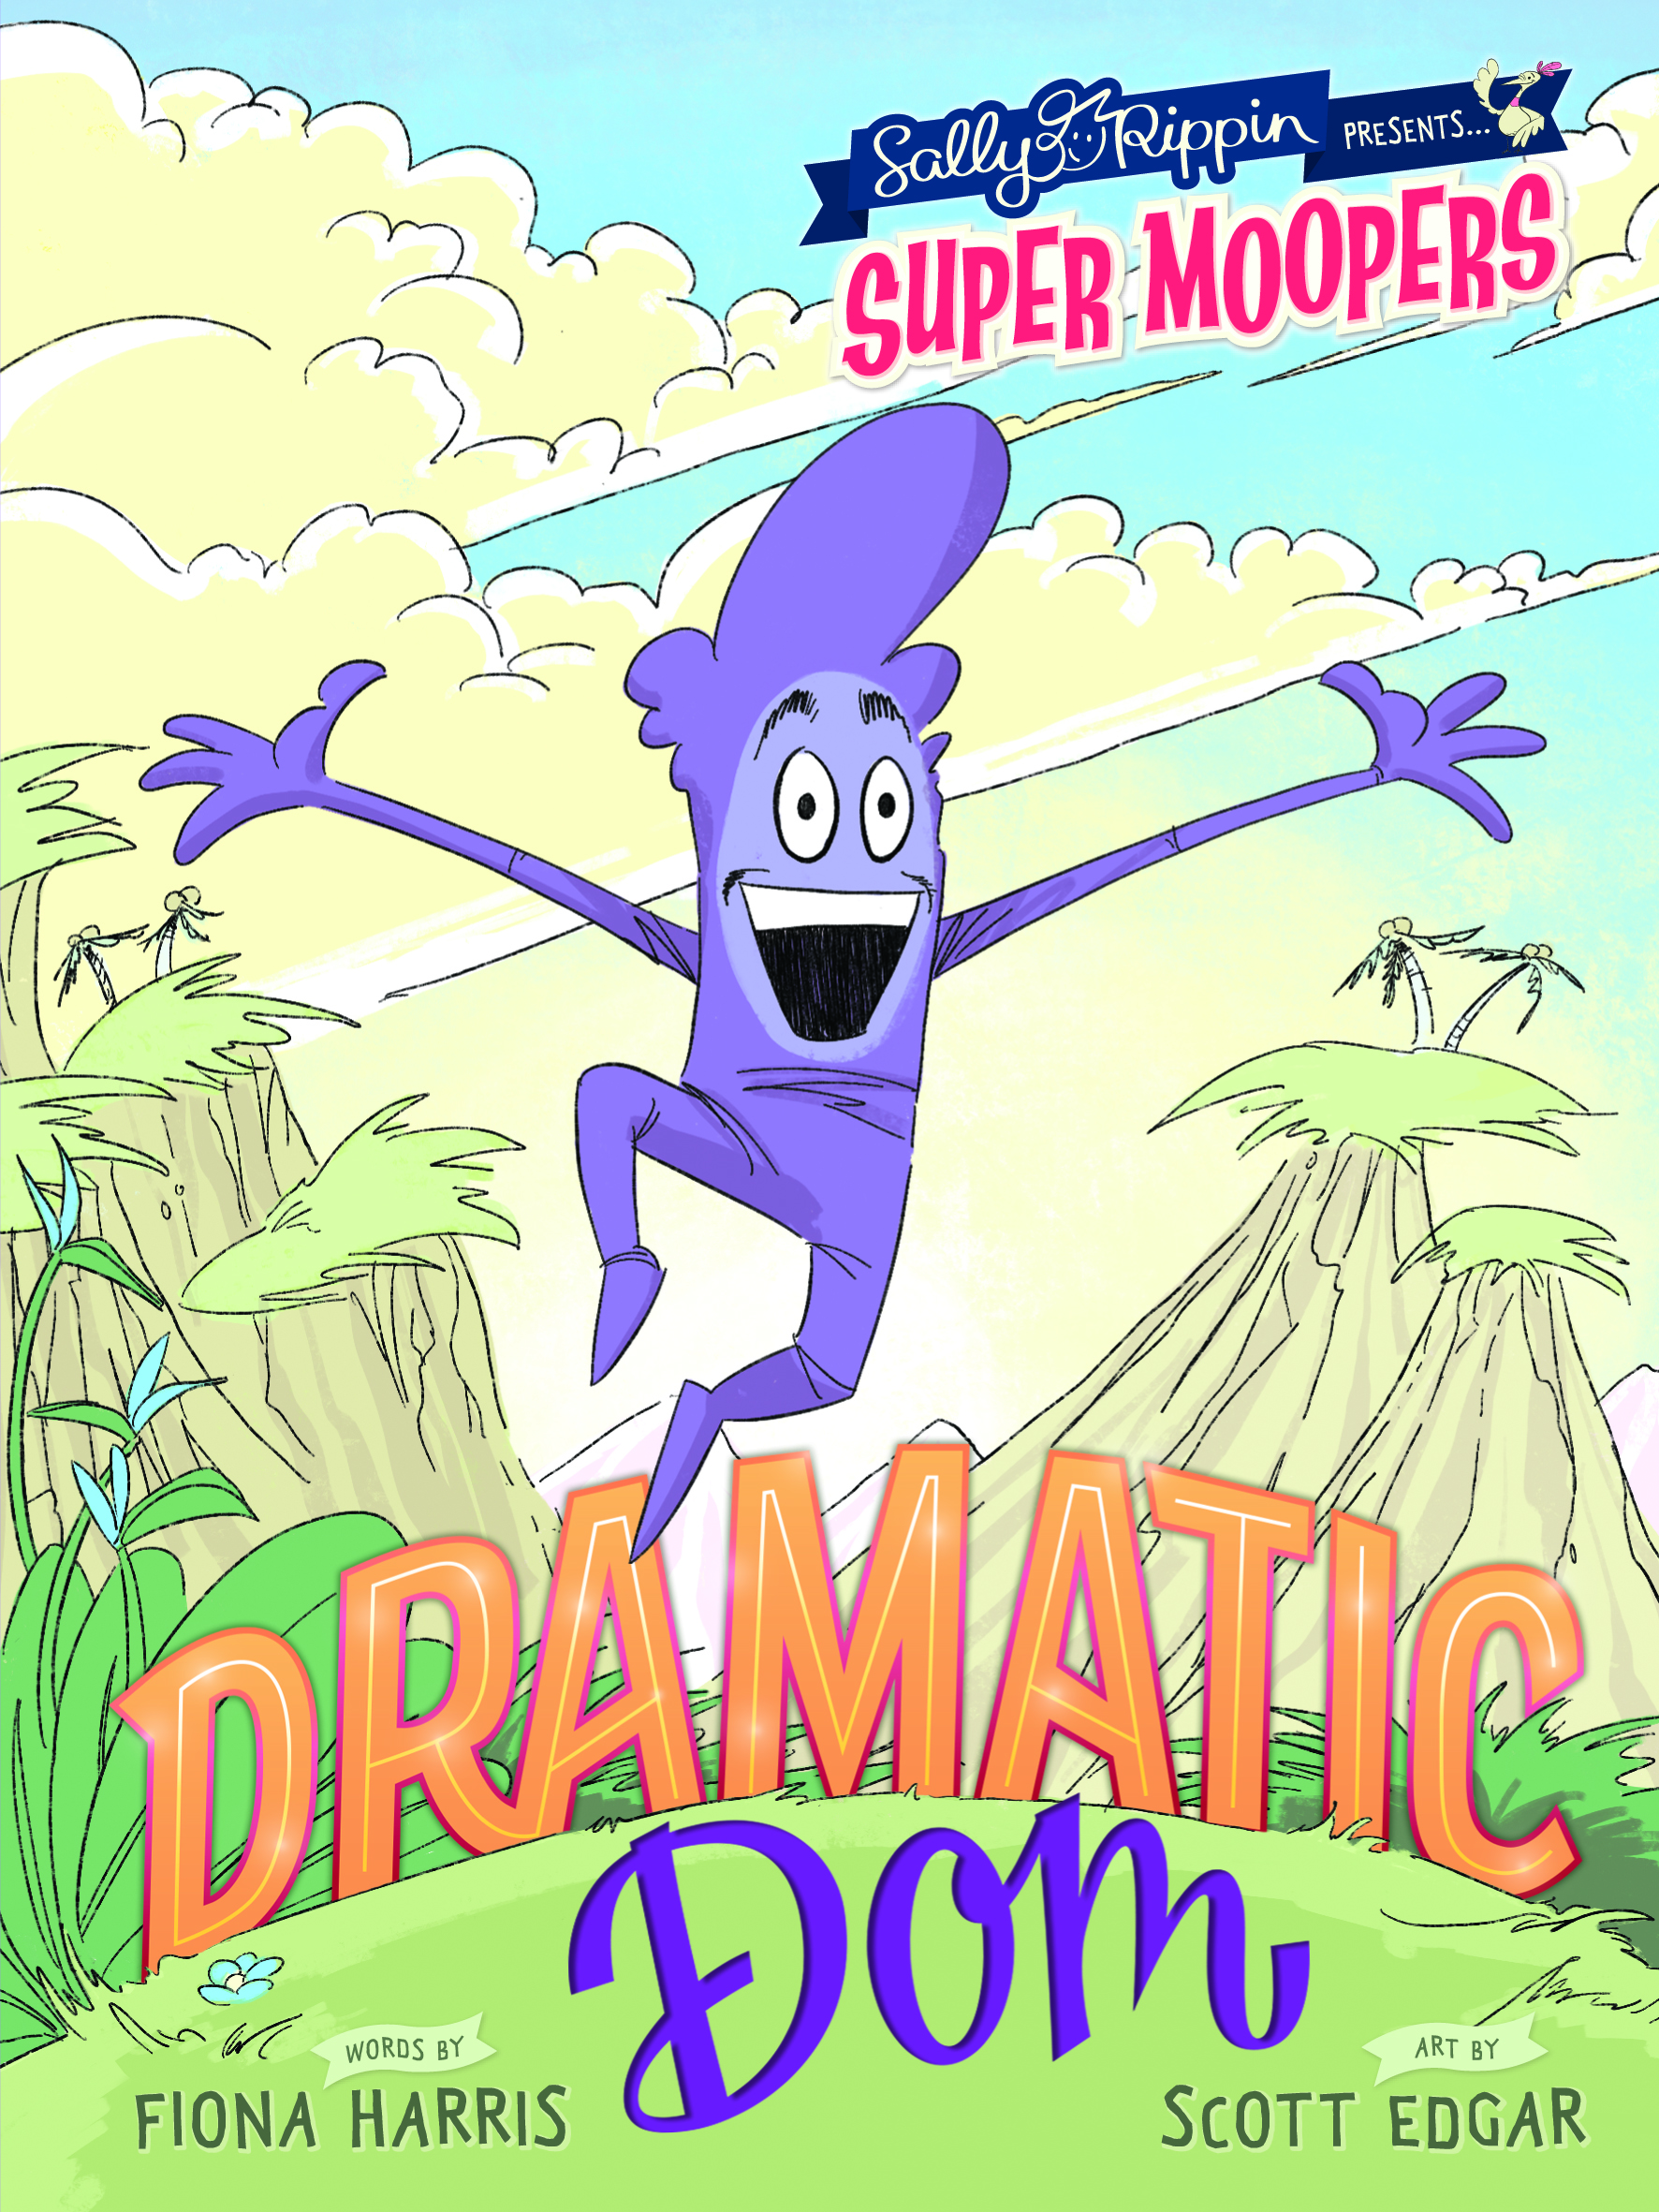 dramatic dom - Dom is very dramatic! He always loves to be the centre of attention. As he rehearses for his first ever play he is so excited to show the whole of Moopertown his skills! But some Moopers find Dom's over-the-top ways a bit annoying. Poor Dom. Will his performance be ruined by his off-stage dramatics?